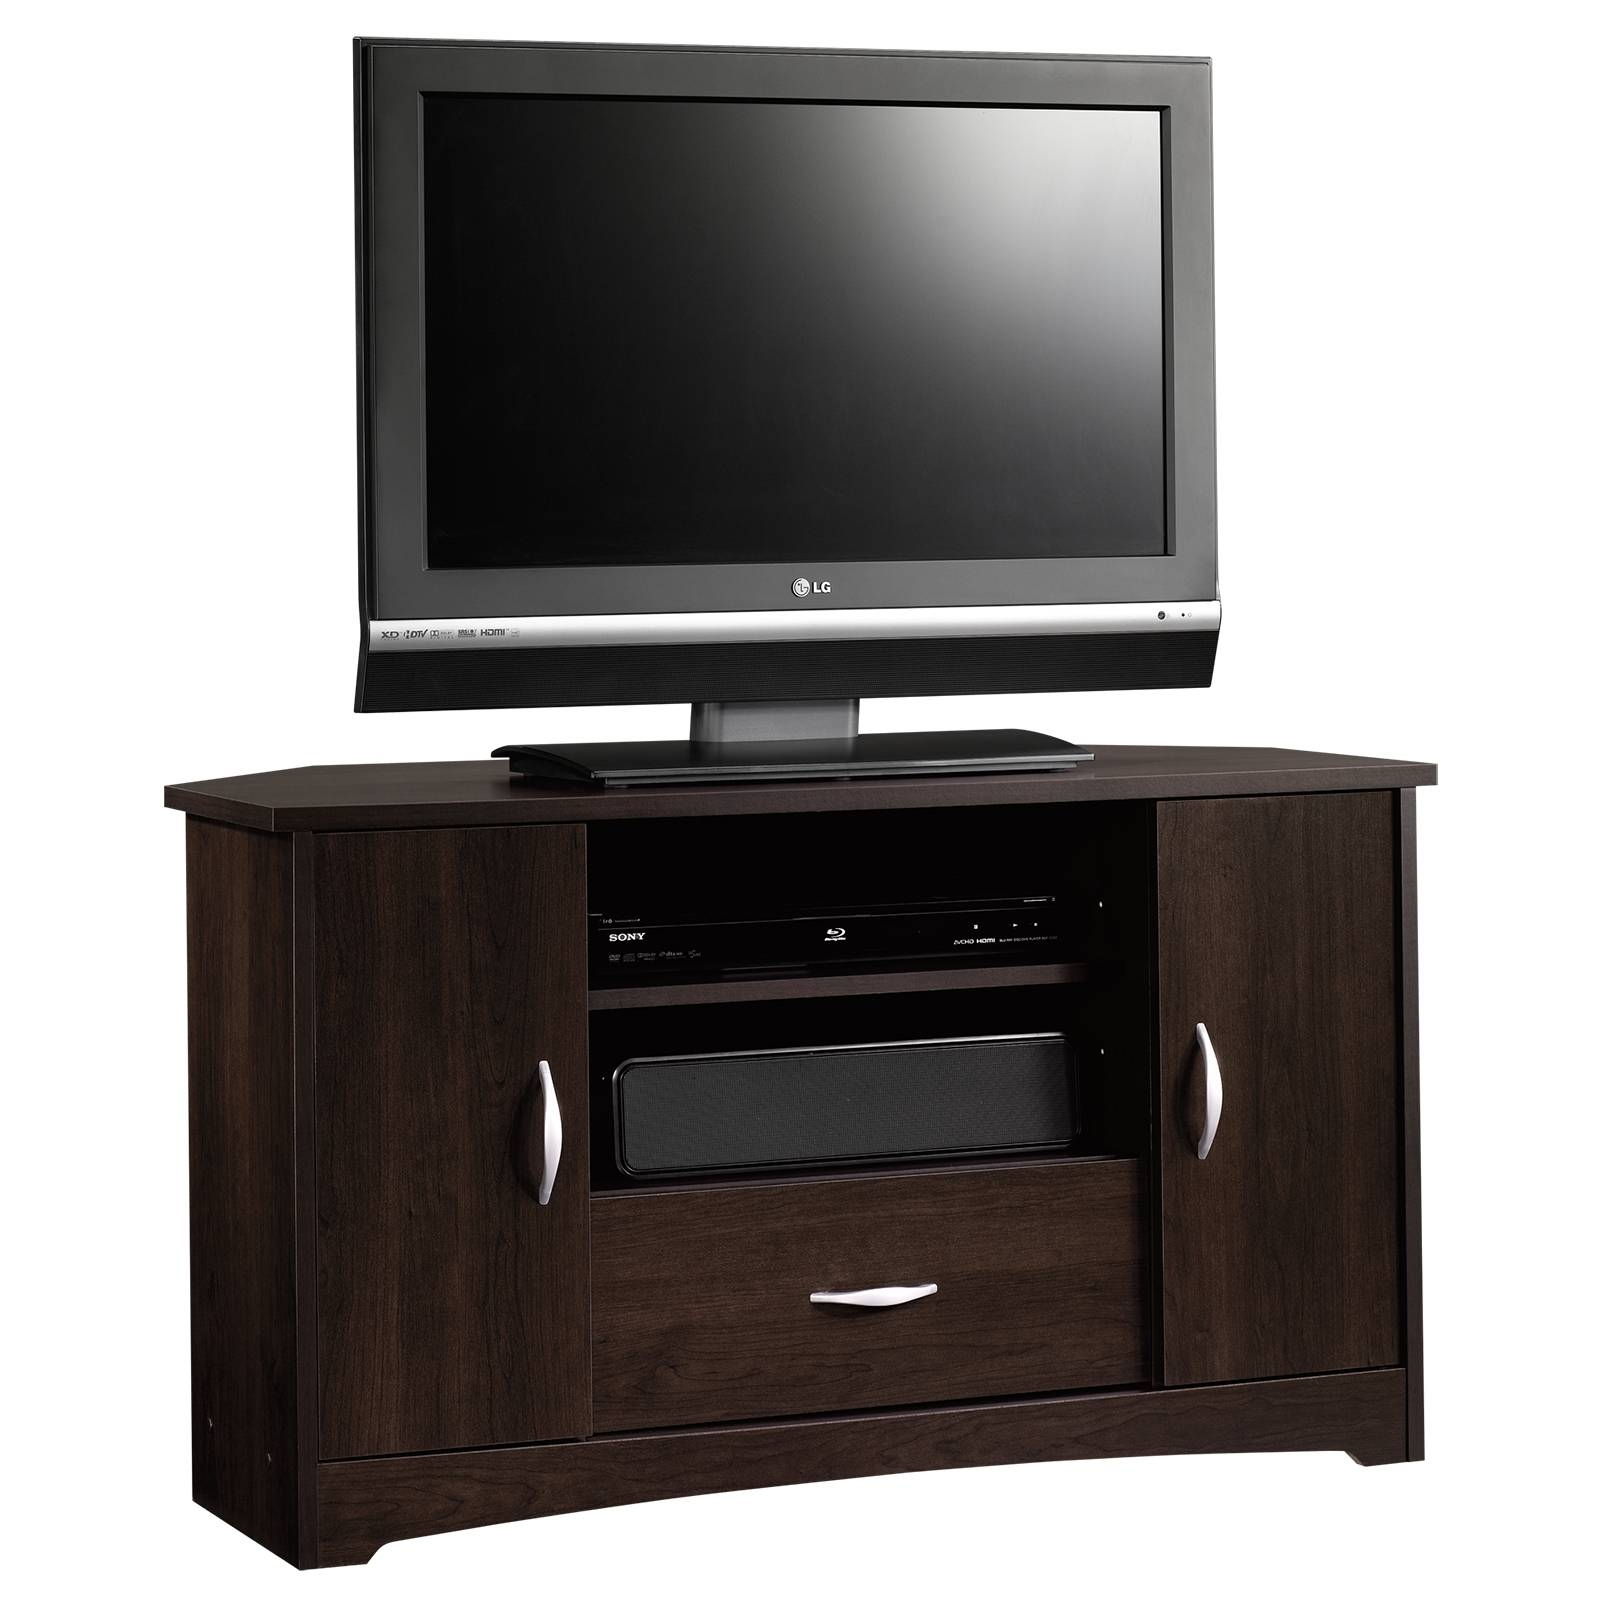 Tremendous Flat Screens New Teak Furnitures As Wells As Flat within Corner Tv Stands With Drawers (Image 13 of 15)